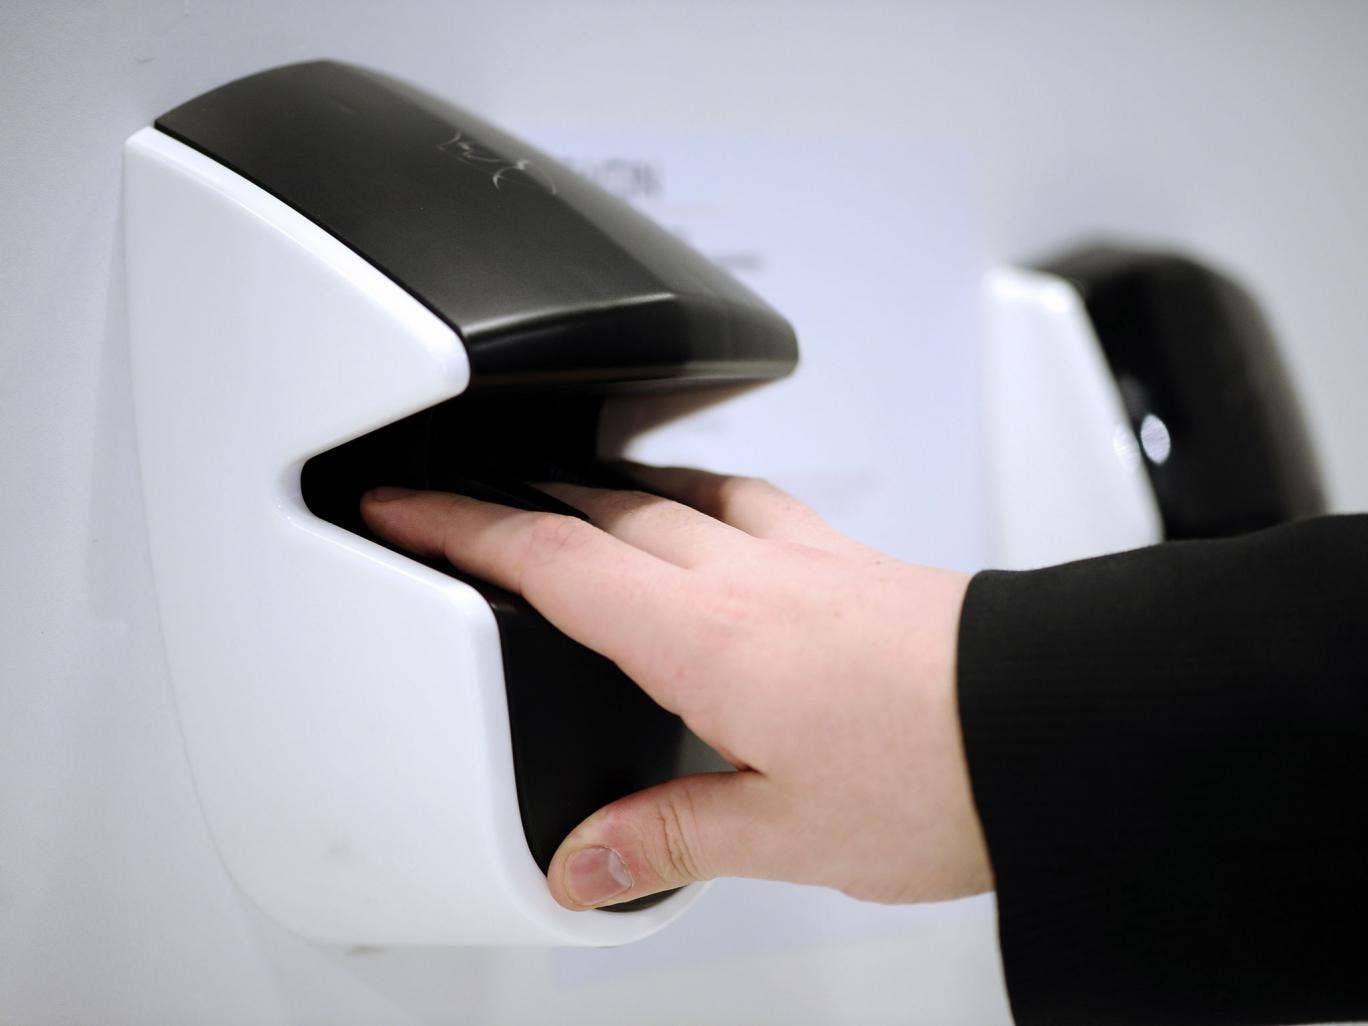 More than a million pupils have been fingerprinted at their secondary school